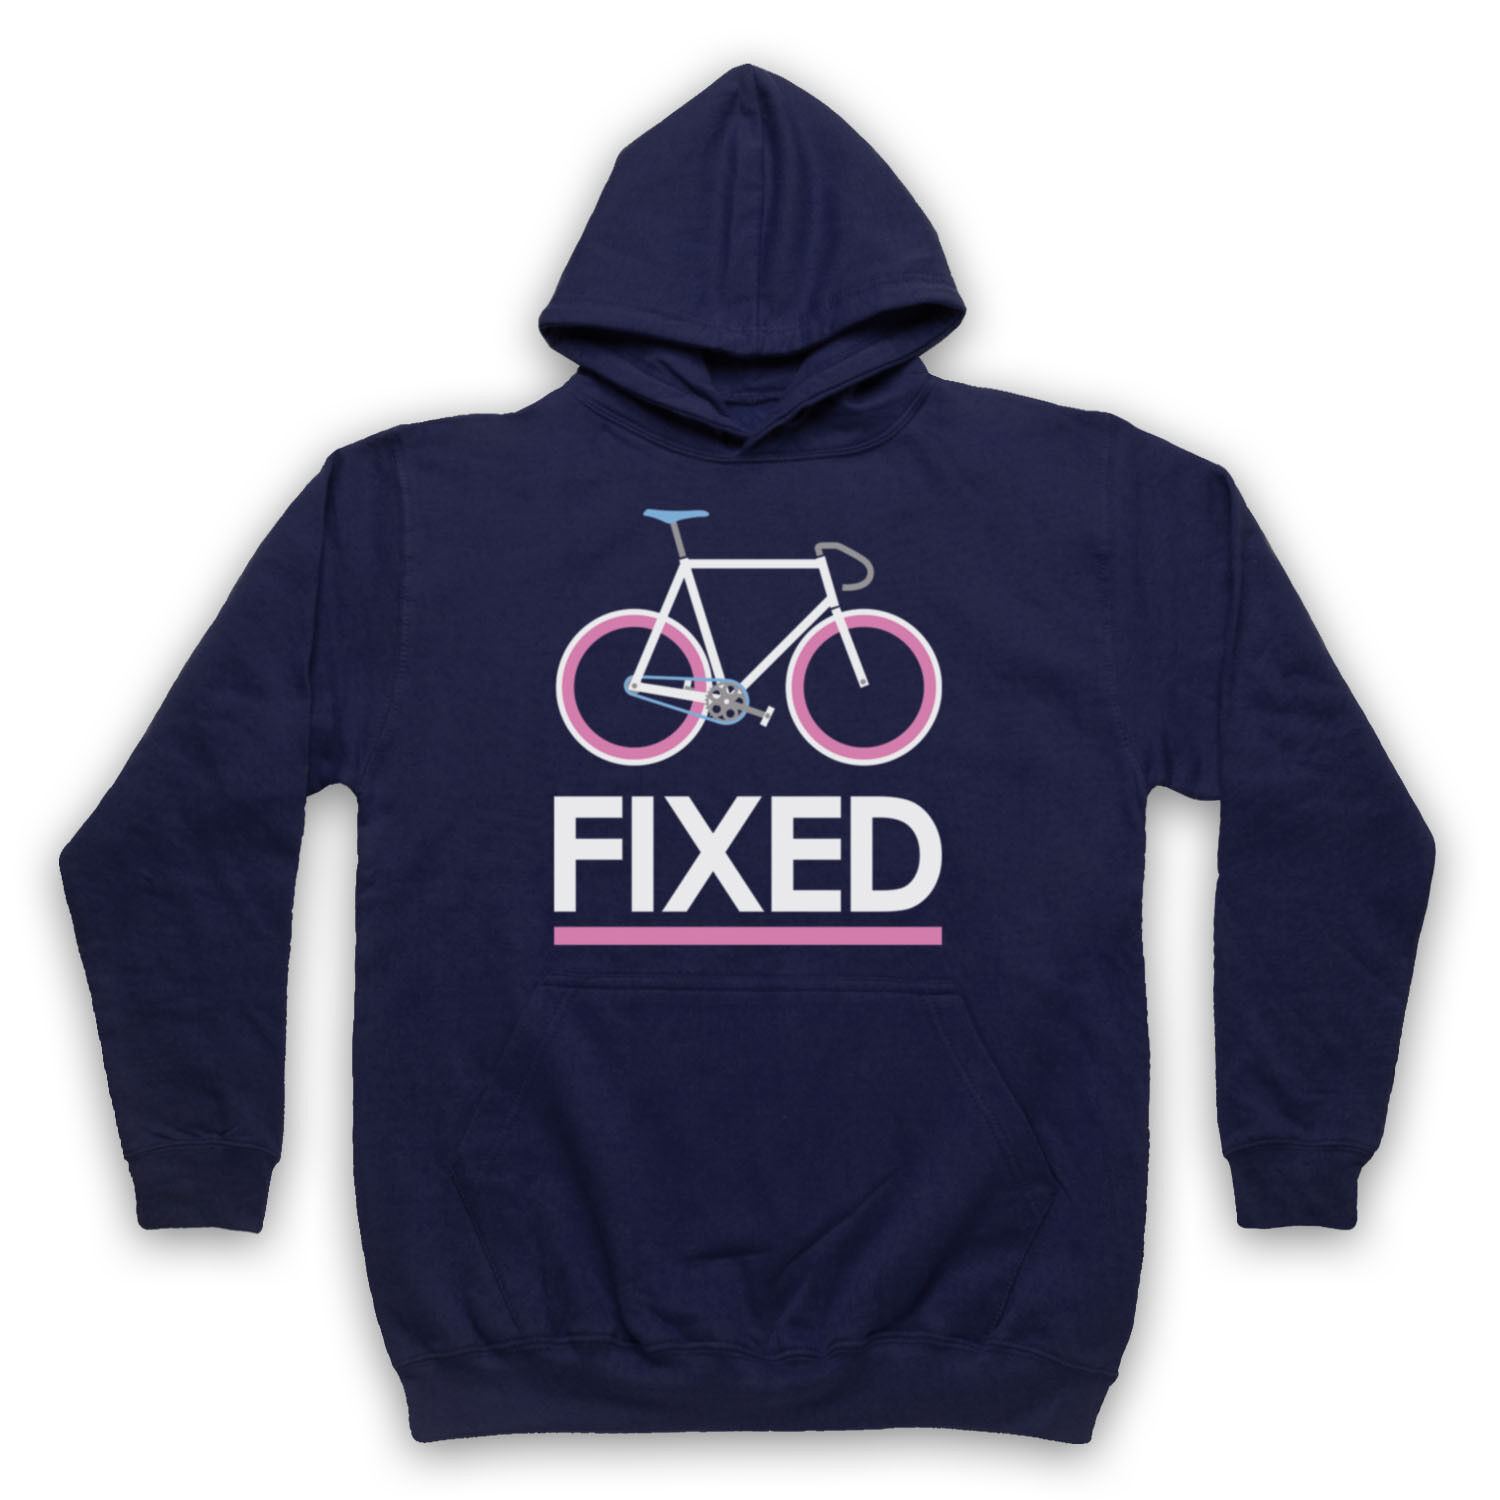 FIXED GEAR BICYCLE FIXIE RETRO STYLE BIKE RIDING CYCLE ADULTS KIDS HOODIE